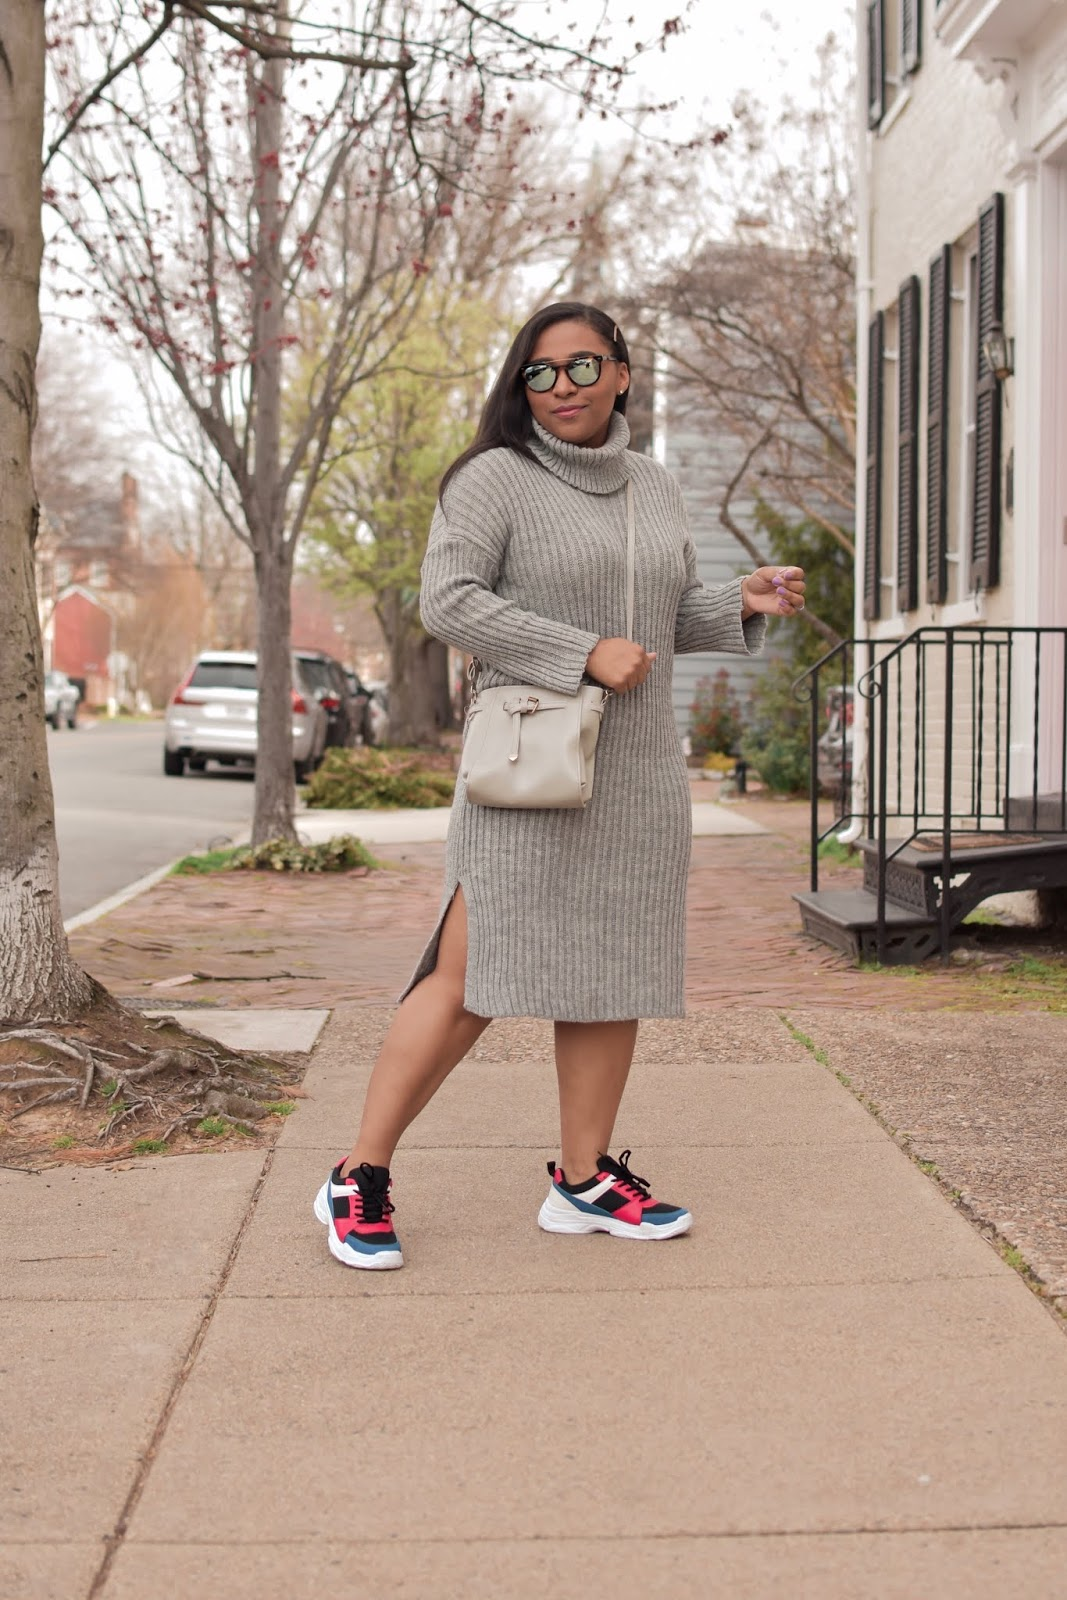 femme luxe, luxe gal, knit swater dress, knit sweater, spring dresses, dresses and sneakers, shoedazzle shoes, spring outfit ideas, pattys kloset